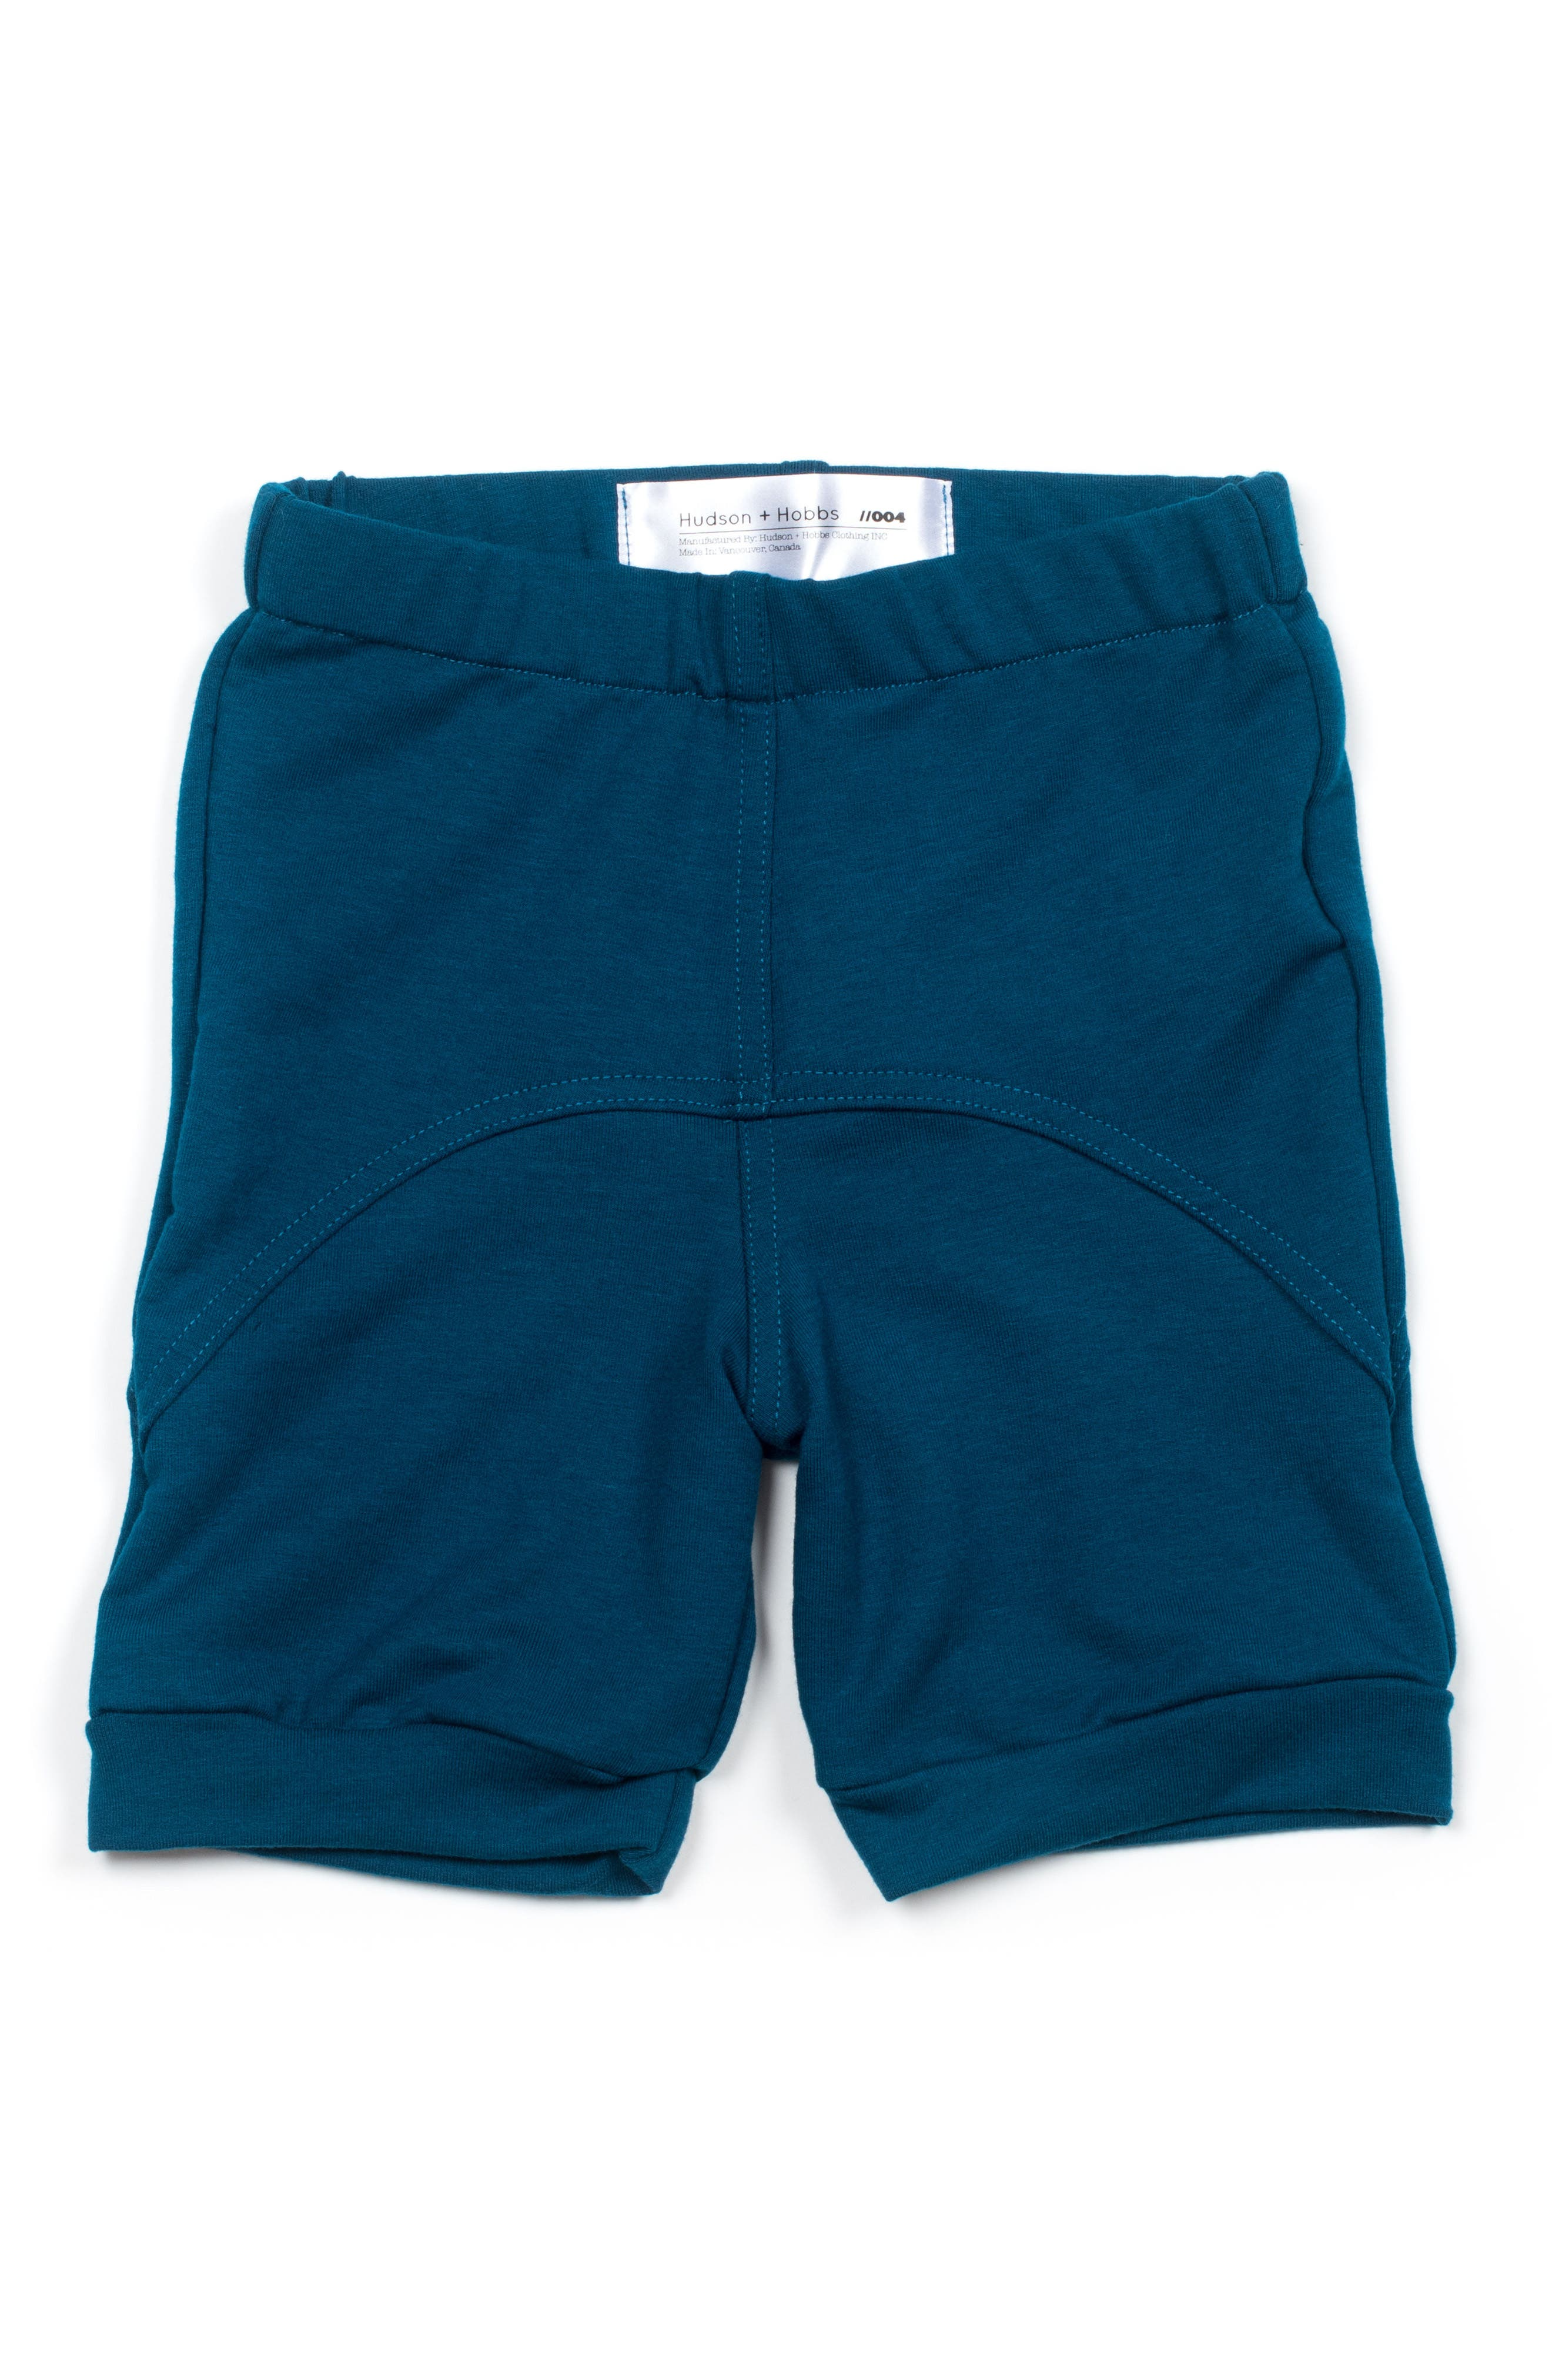 Two-Panel Shorts,                         Main,                         color, Moroccan Blue